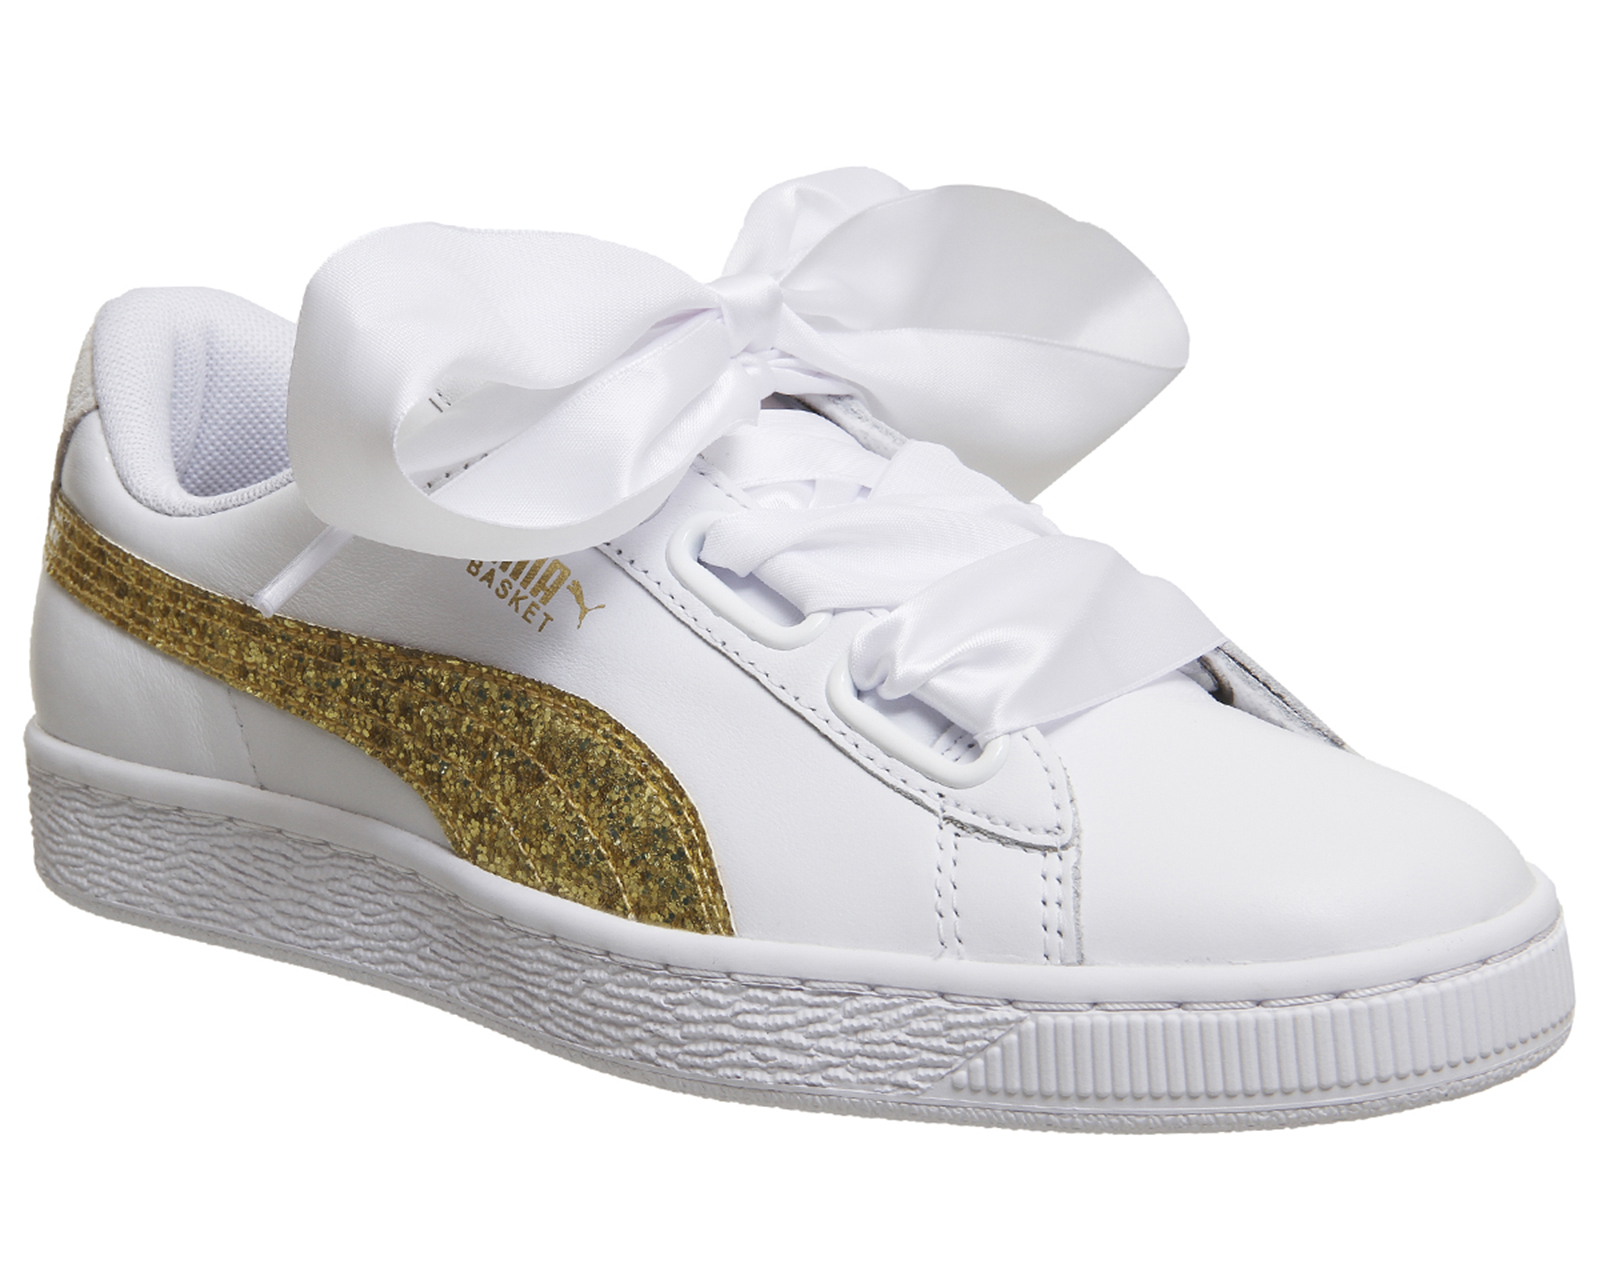 6411ae8fb08a5 Sentinel Womens Puma Basket Heart Trainers WHITE GOLD GLITTER Trainers Shoes